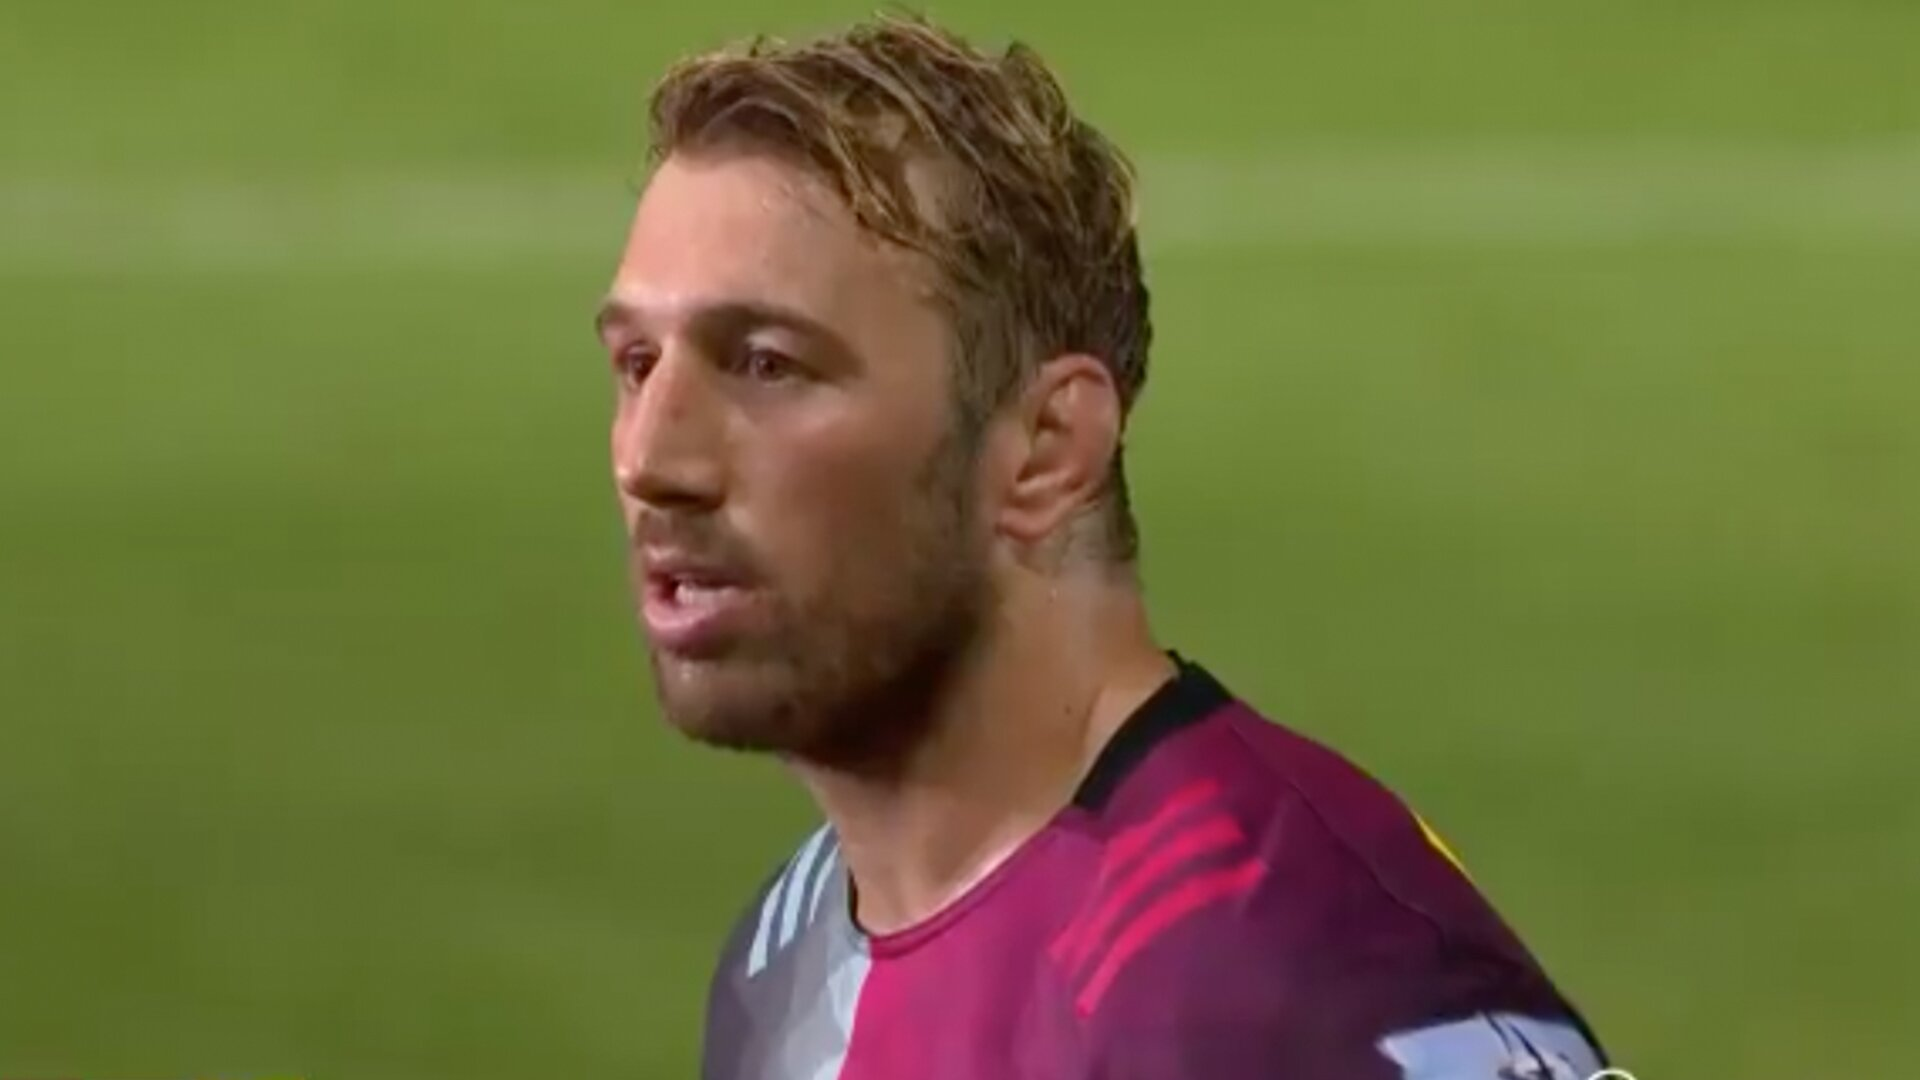 Incredibly emotional moments for Chris Robshaw last night in his final home match for Harlequins